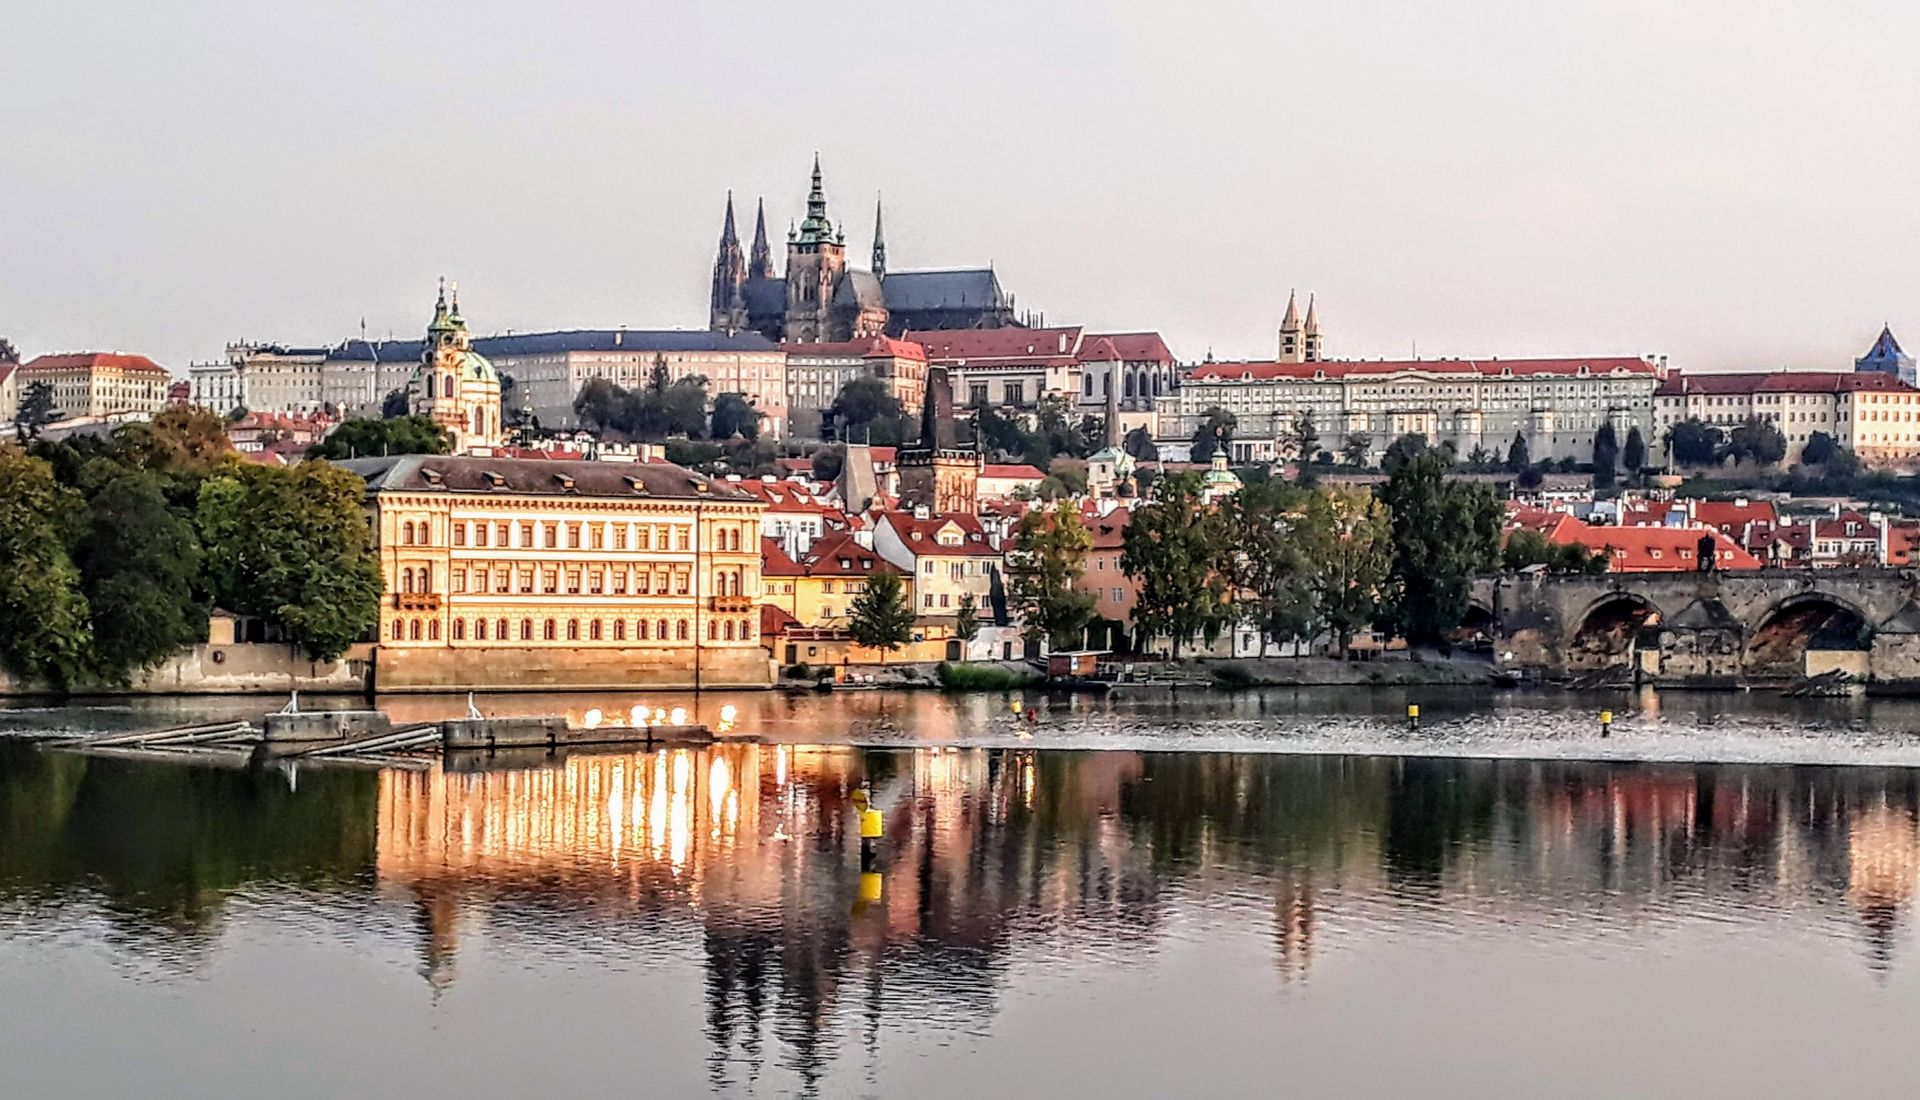 Prague Castle on the hill